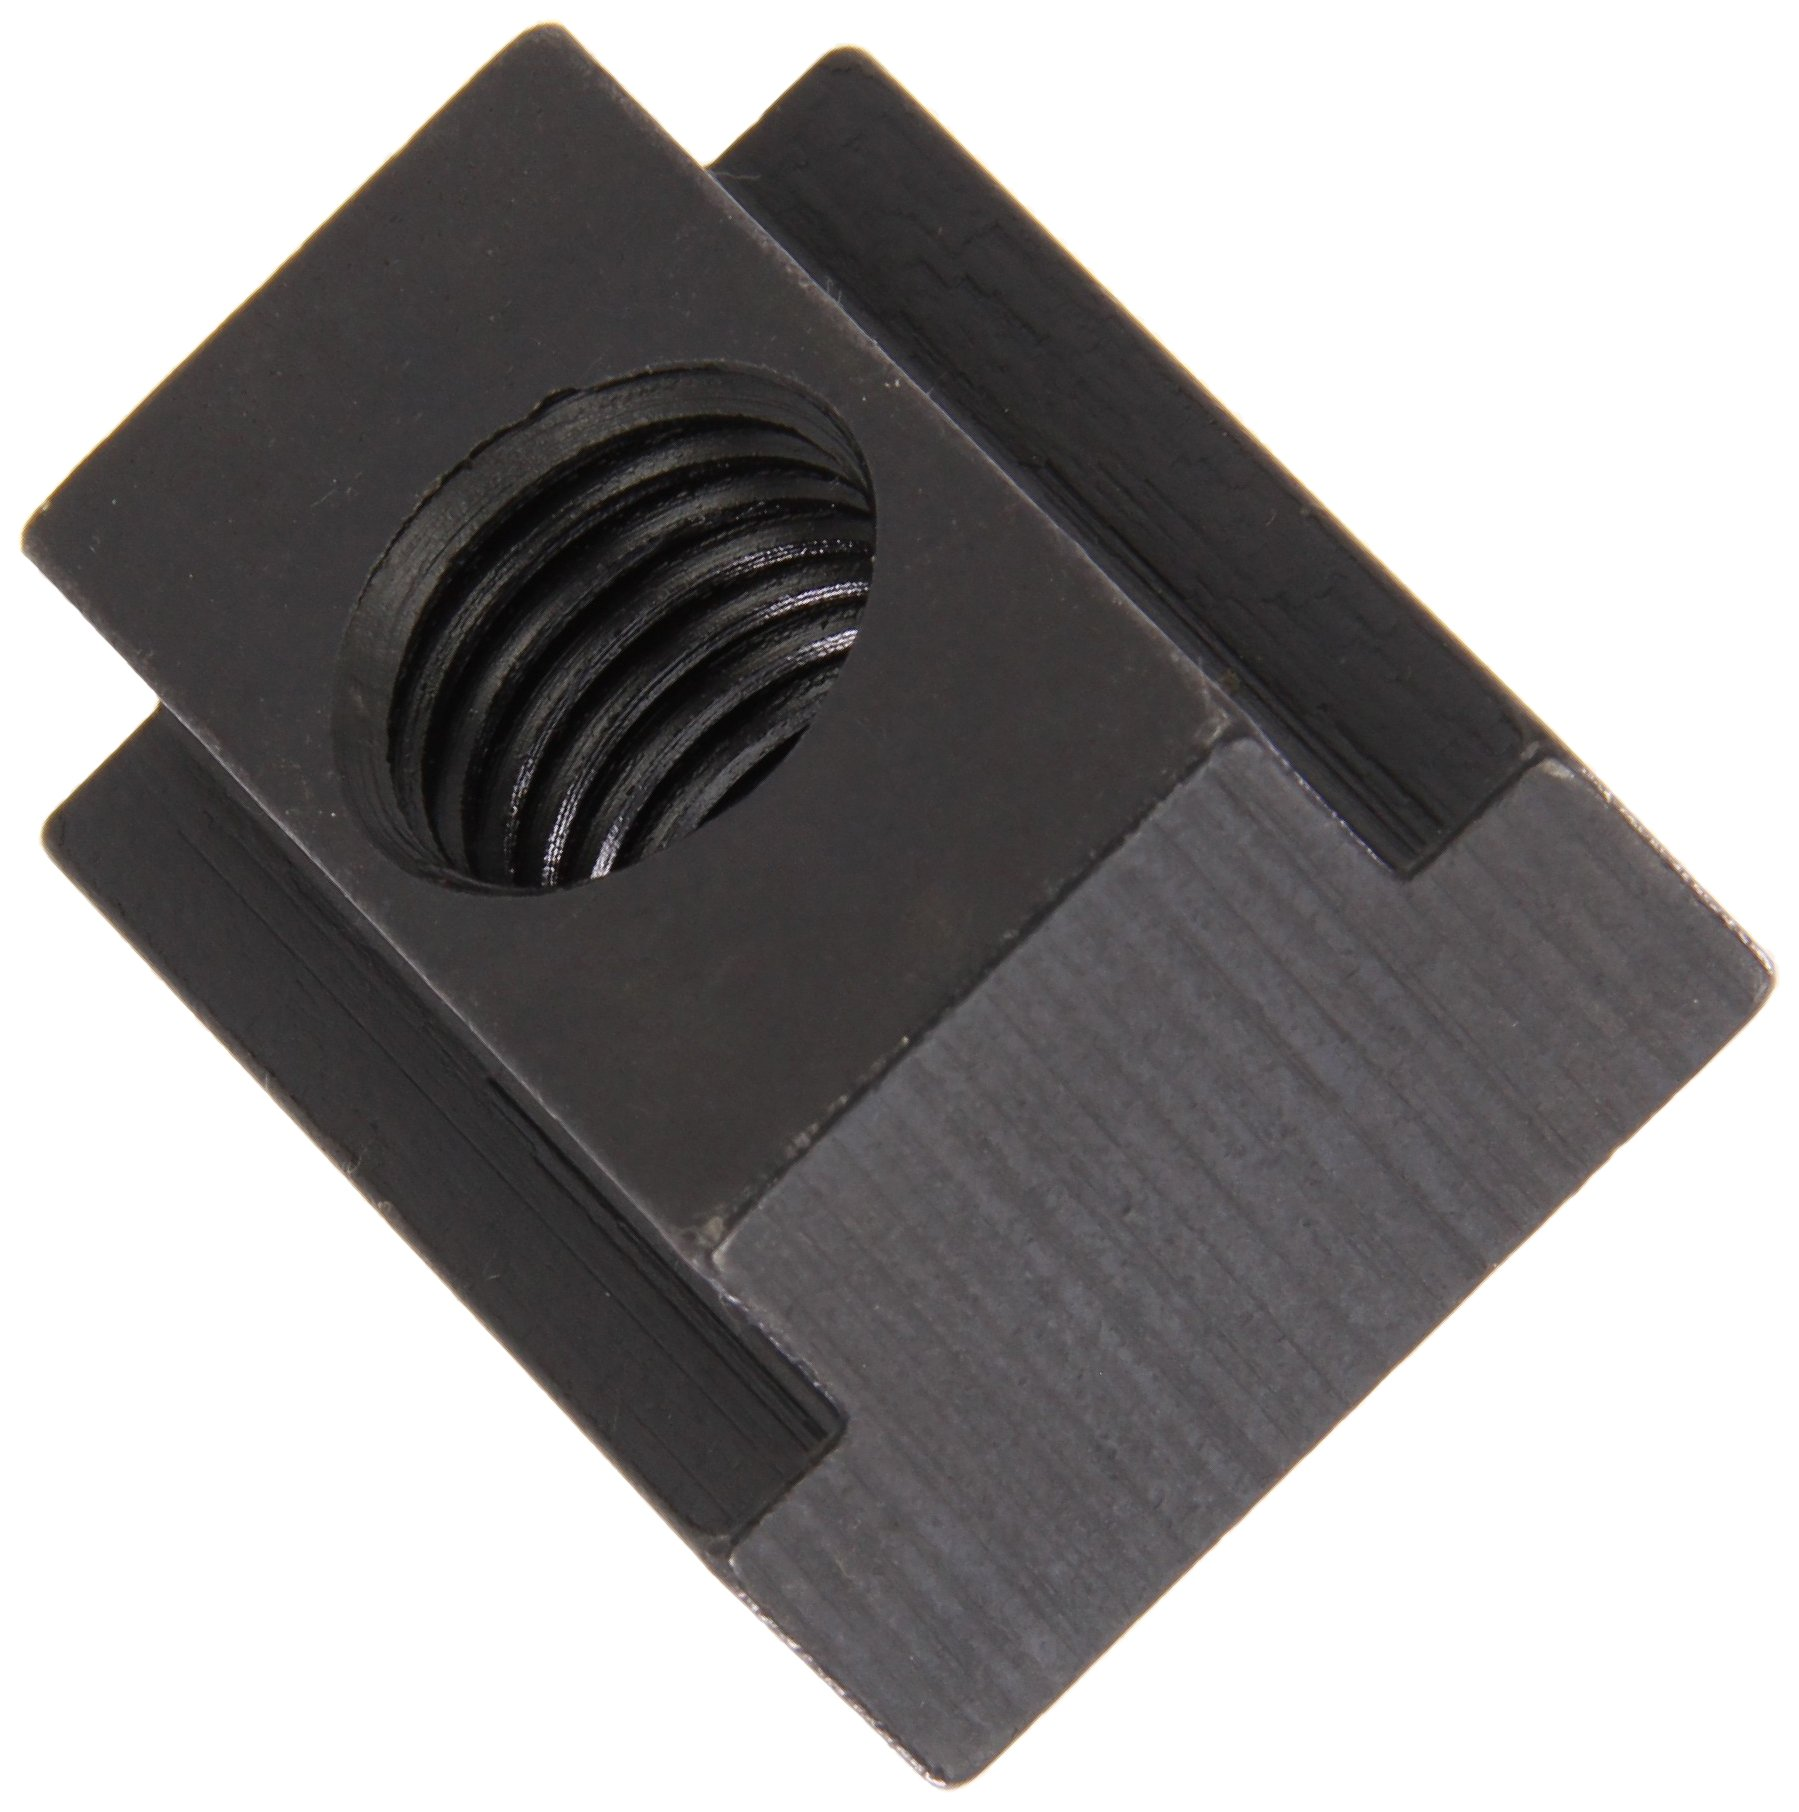 1018 Steel T-Slot Nut, Black Oxide Finish, Grade 5, Tapped Through, 3/8''-16 Threads, 5/8'' Height, 9/16'' Slot Depth, Made in US (Pack of 5)